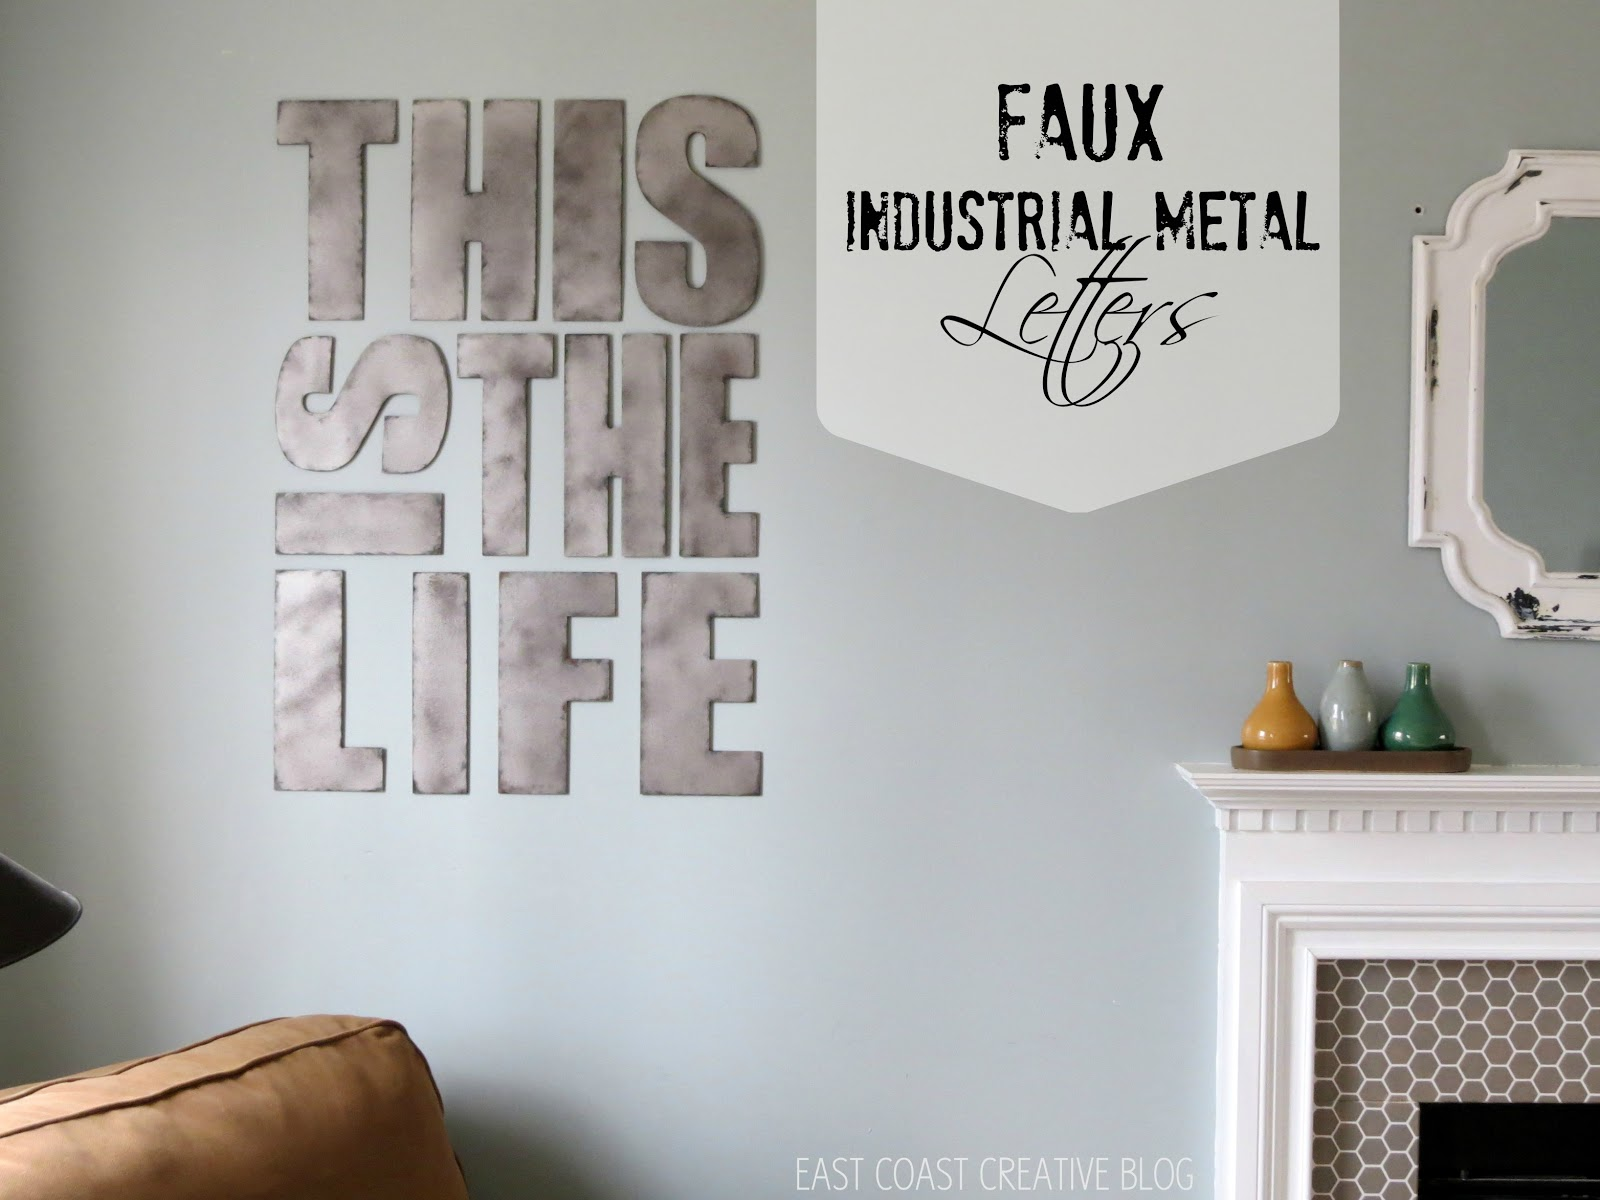 Steel Letters For Walls Industrial Metal Letters Faux Painting  Infarrantly Creative